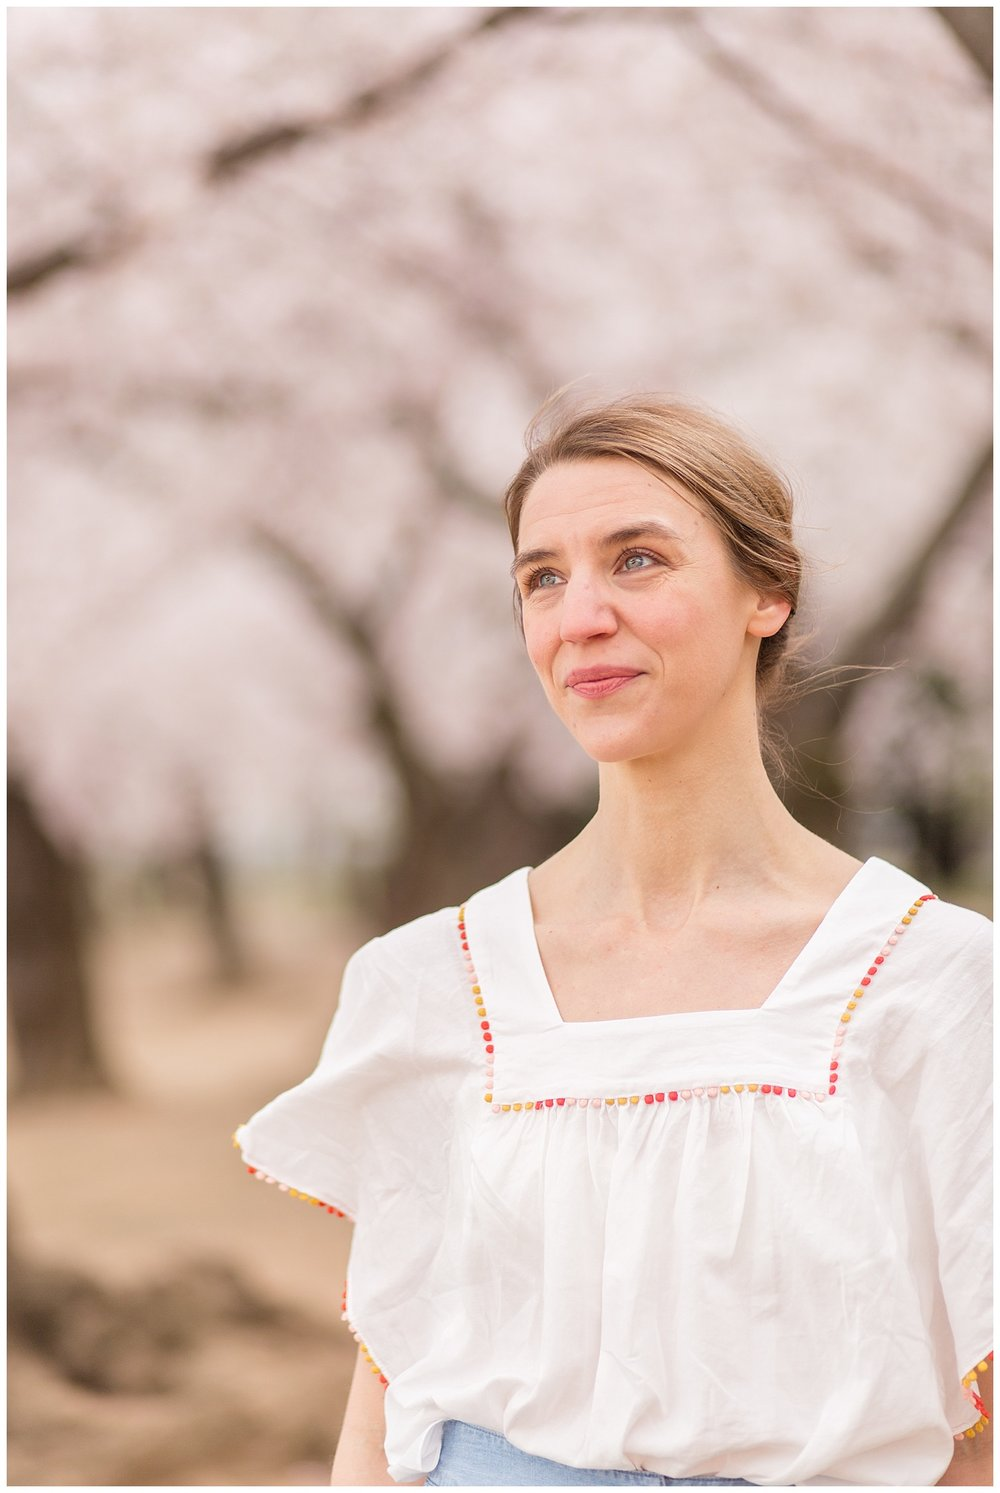 emily-belson-photography-cherry-blossom-dc-jessica-07.jpg